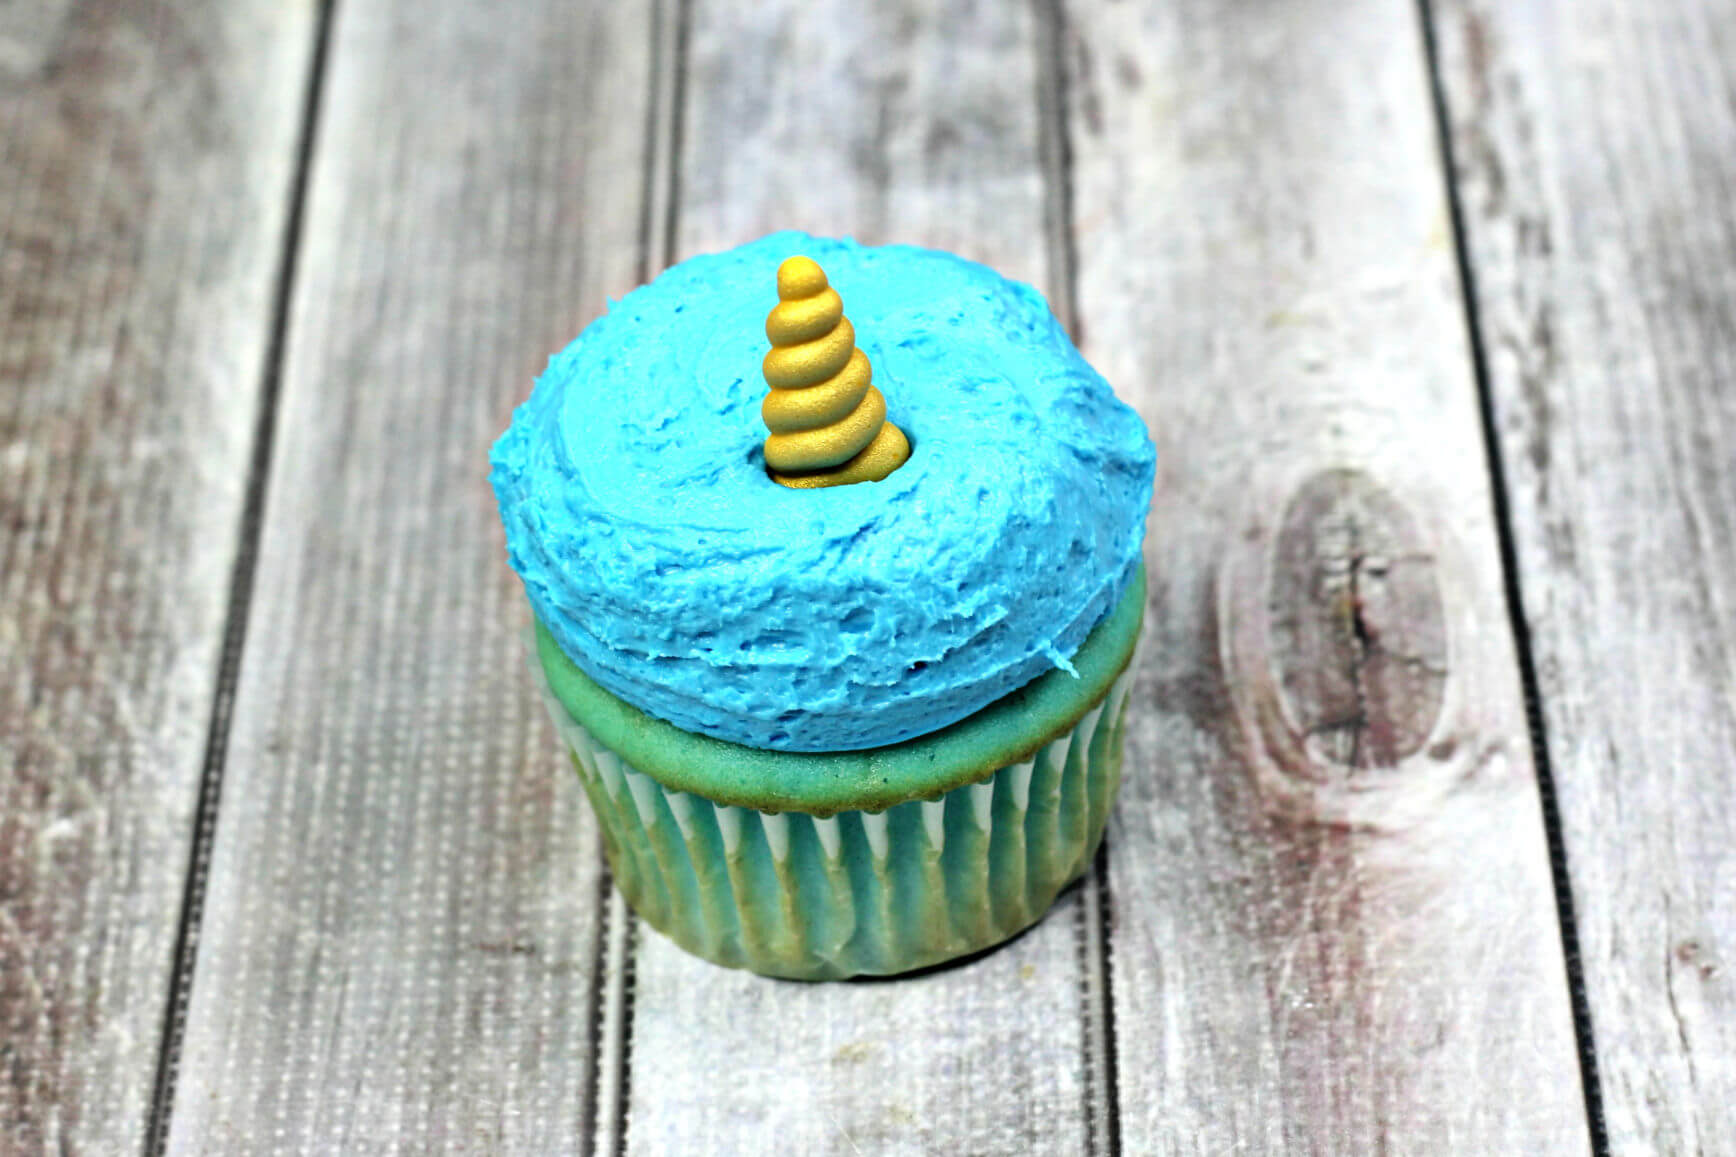 Add unicorn horn to narwhal cupcake